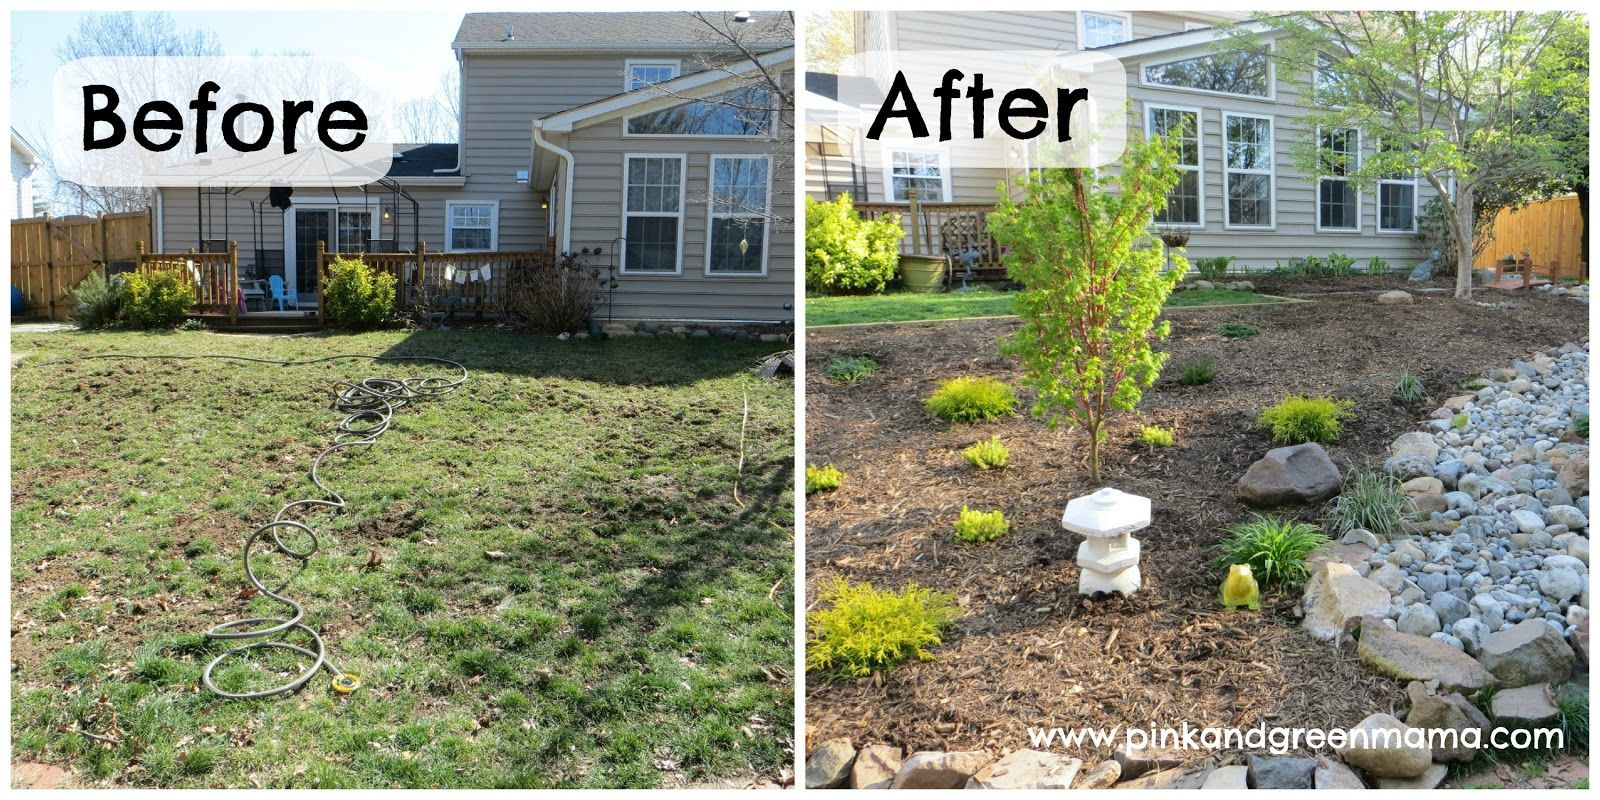 before and after diy backyard makeover on a budget from pink and green mama blog - Backyard Garden Ideas Before And After